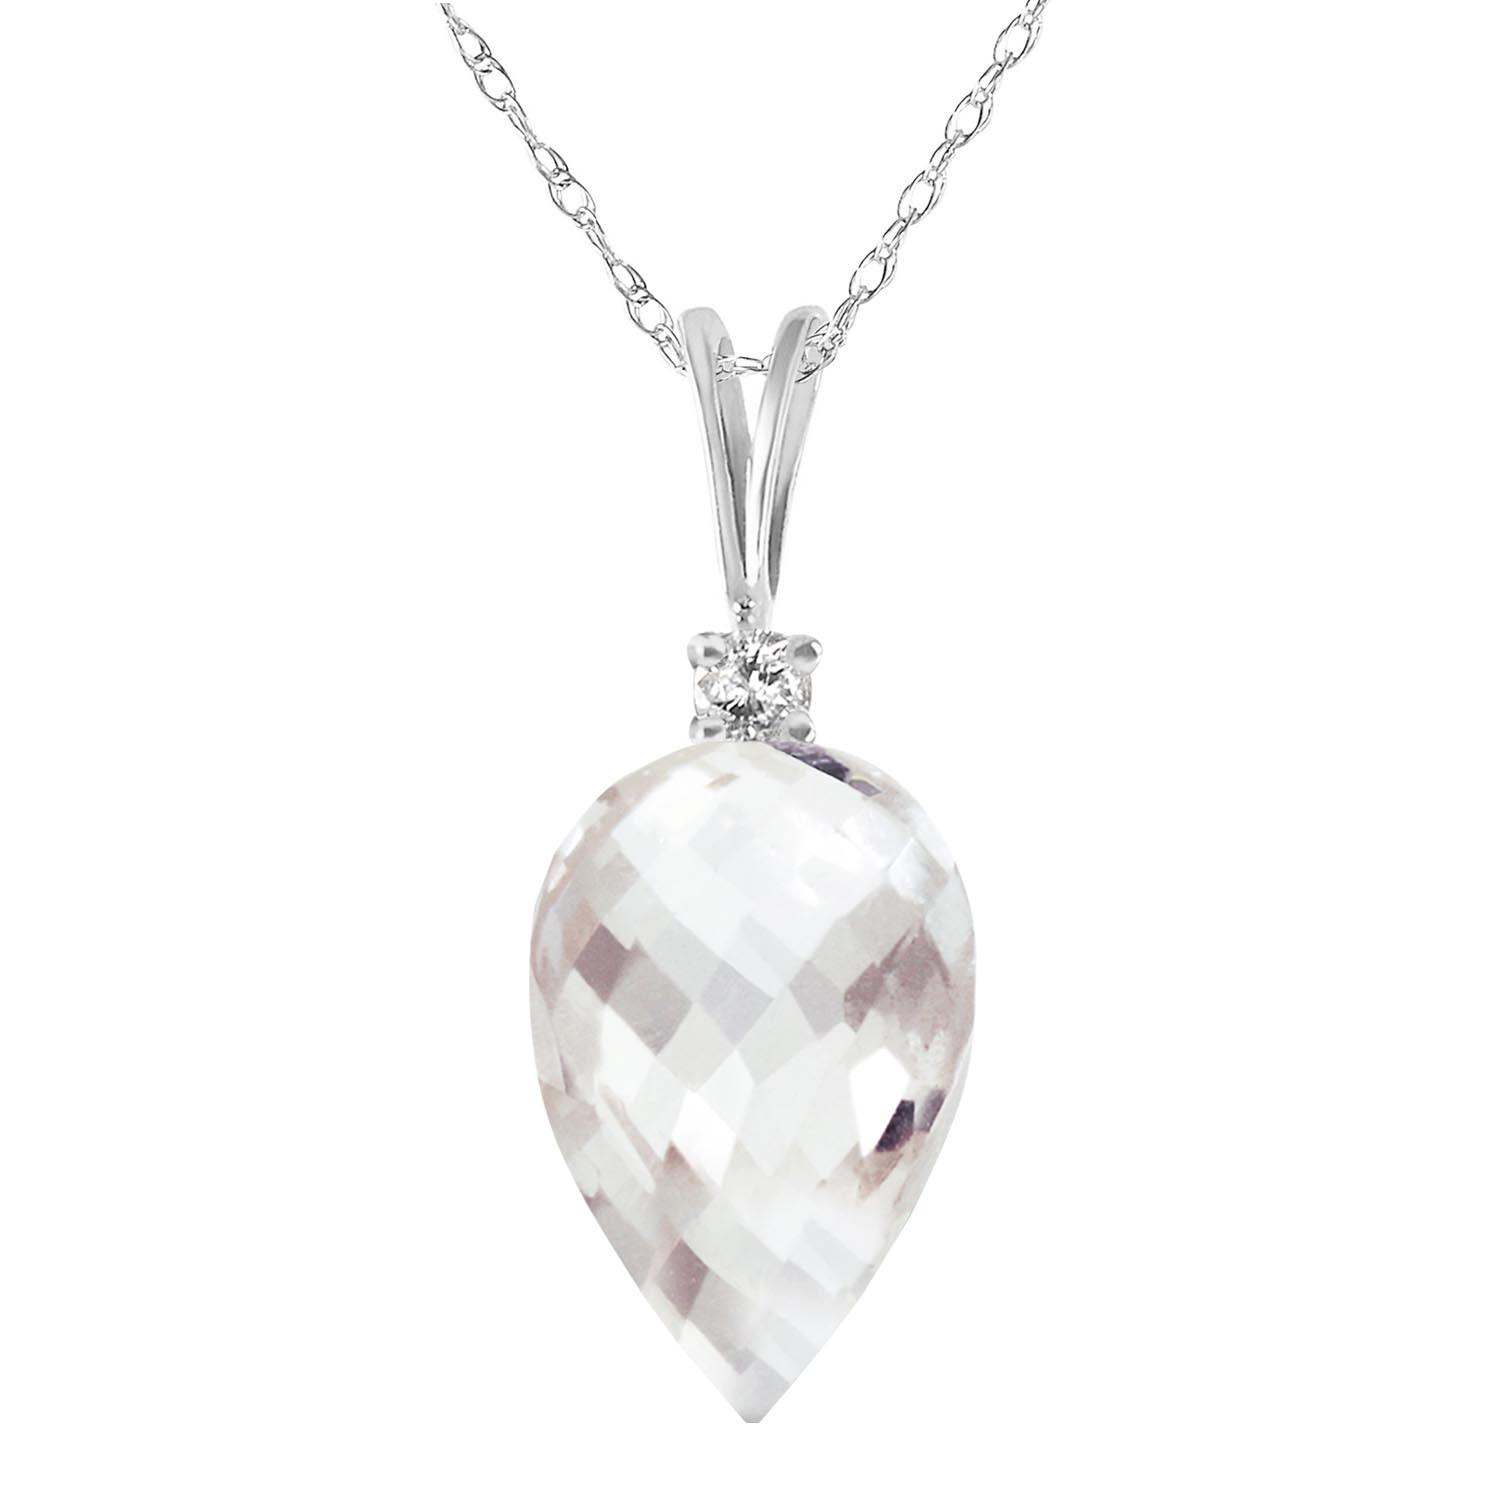 Pointed Briolette Cut White Topaz Pendant Necklace 12.3 ctw in 9ct White Gold